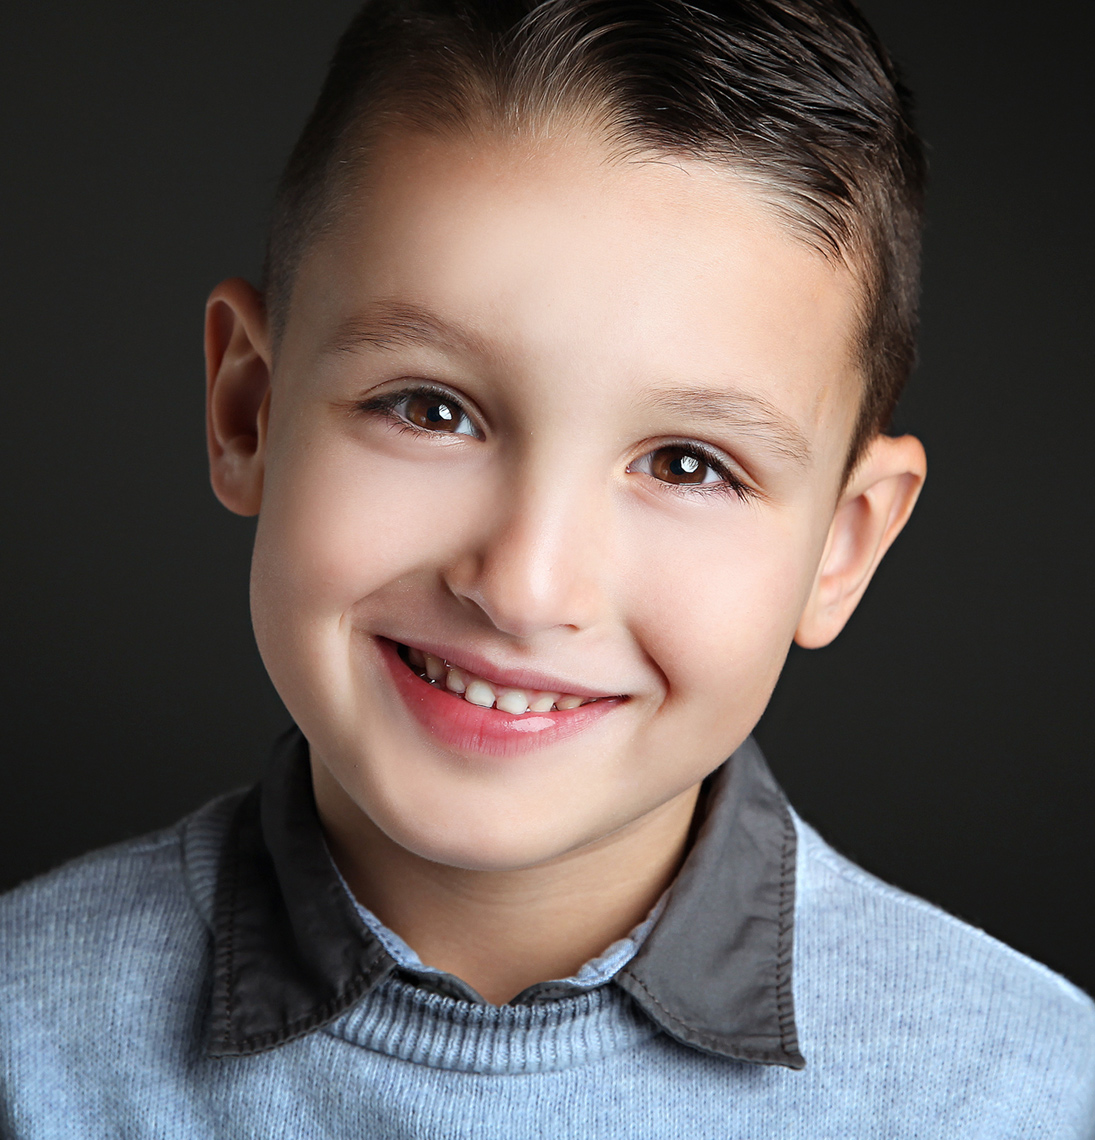 headshot-photographers-london-ontario-paula-tizzard-studio-business-kids-actor-professional